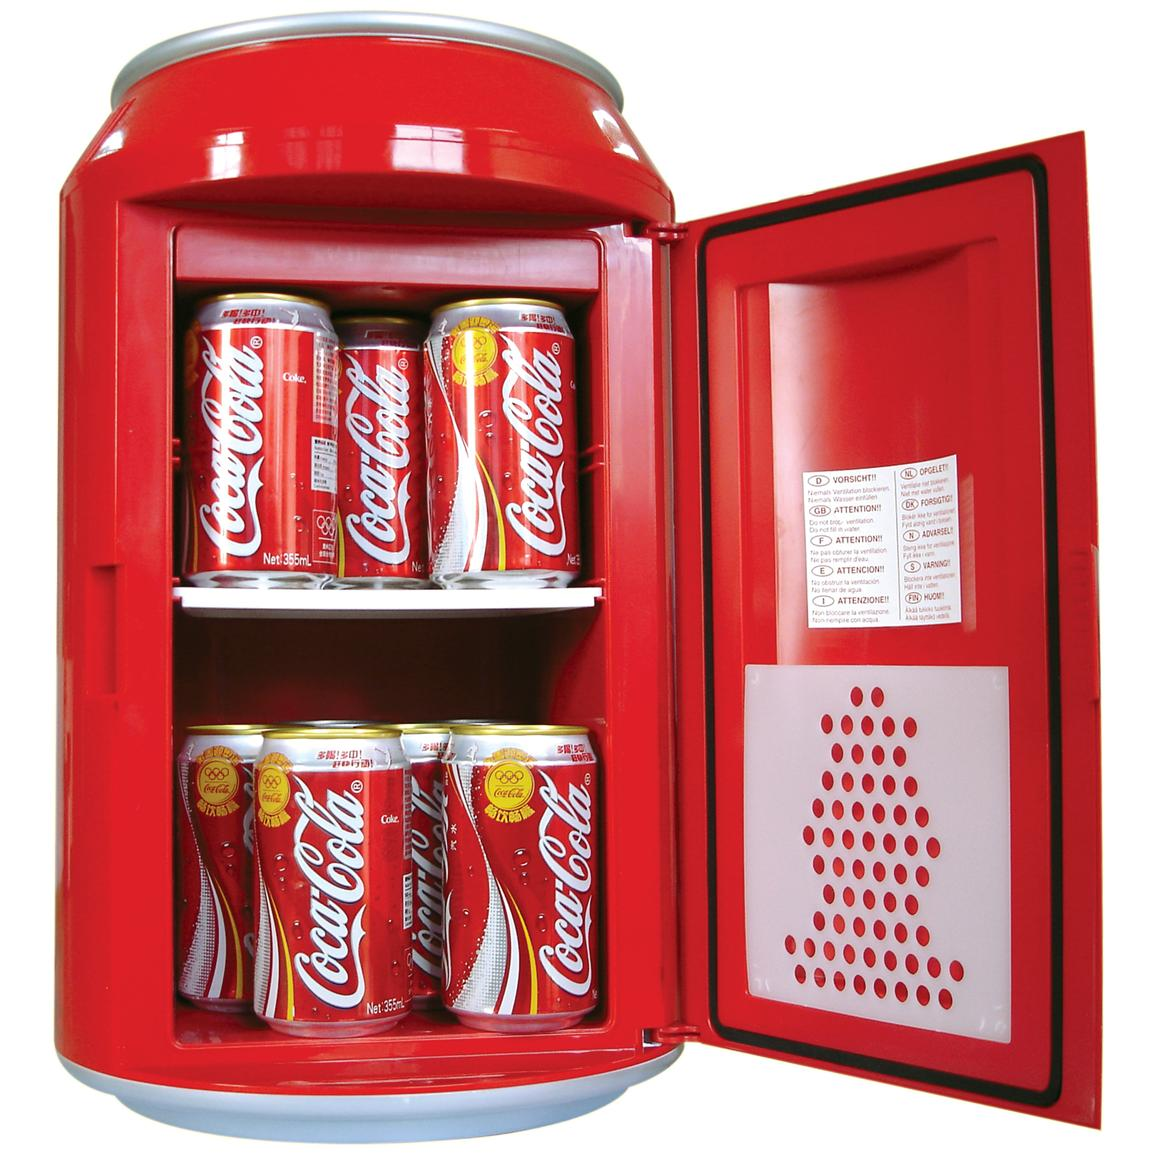 It holds up to ten 12-oz. cans of soda or beer